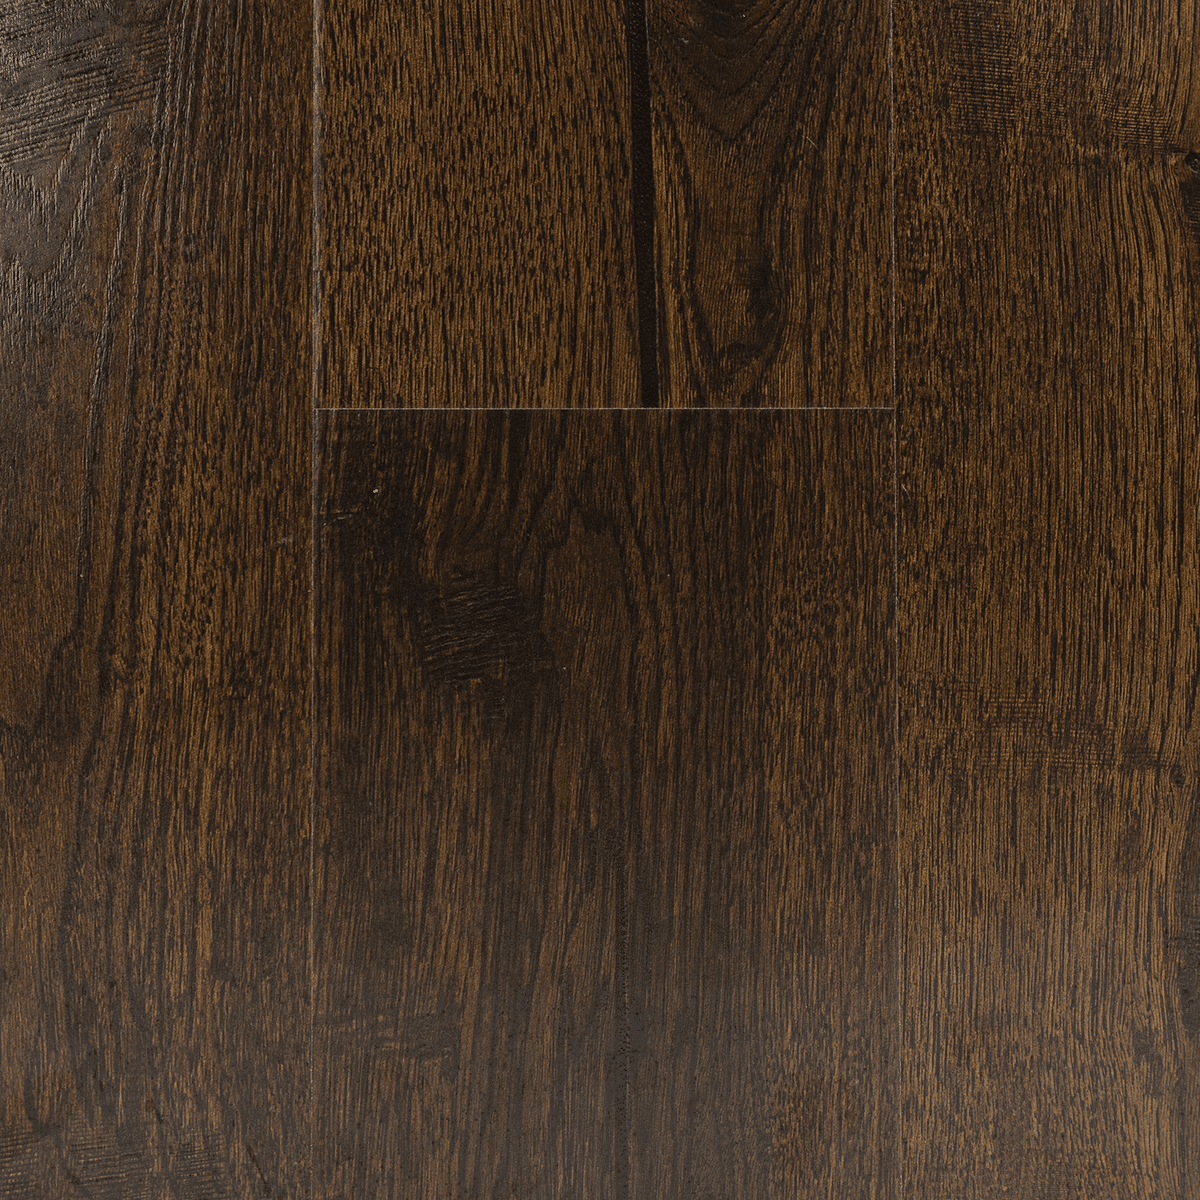 Lawson River Ranch Collection Bricky Laminate Flooring The Last Inventory